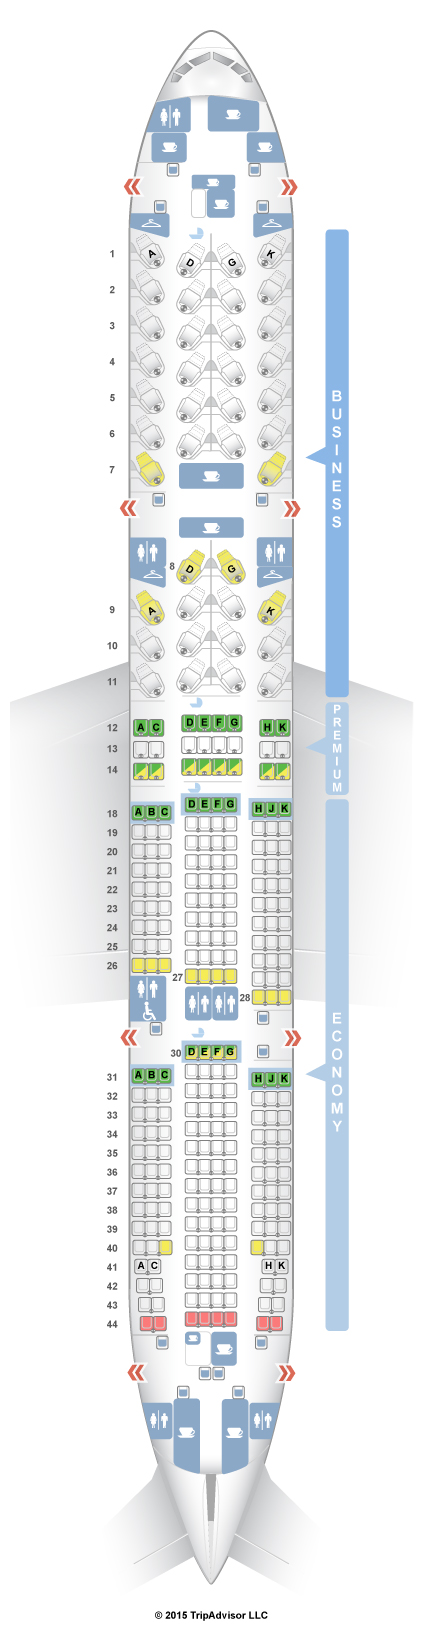 Boeing 787 Seating Chart Wwwpicturessoboeing 787 8 seat map air